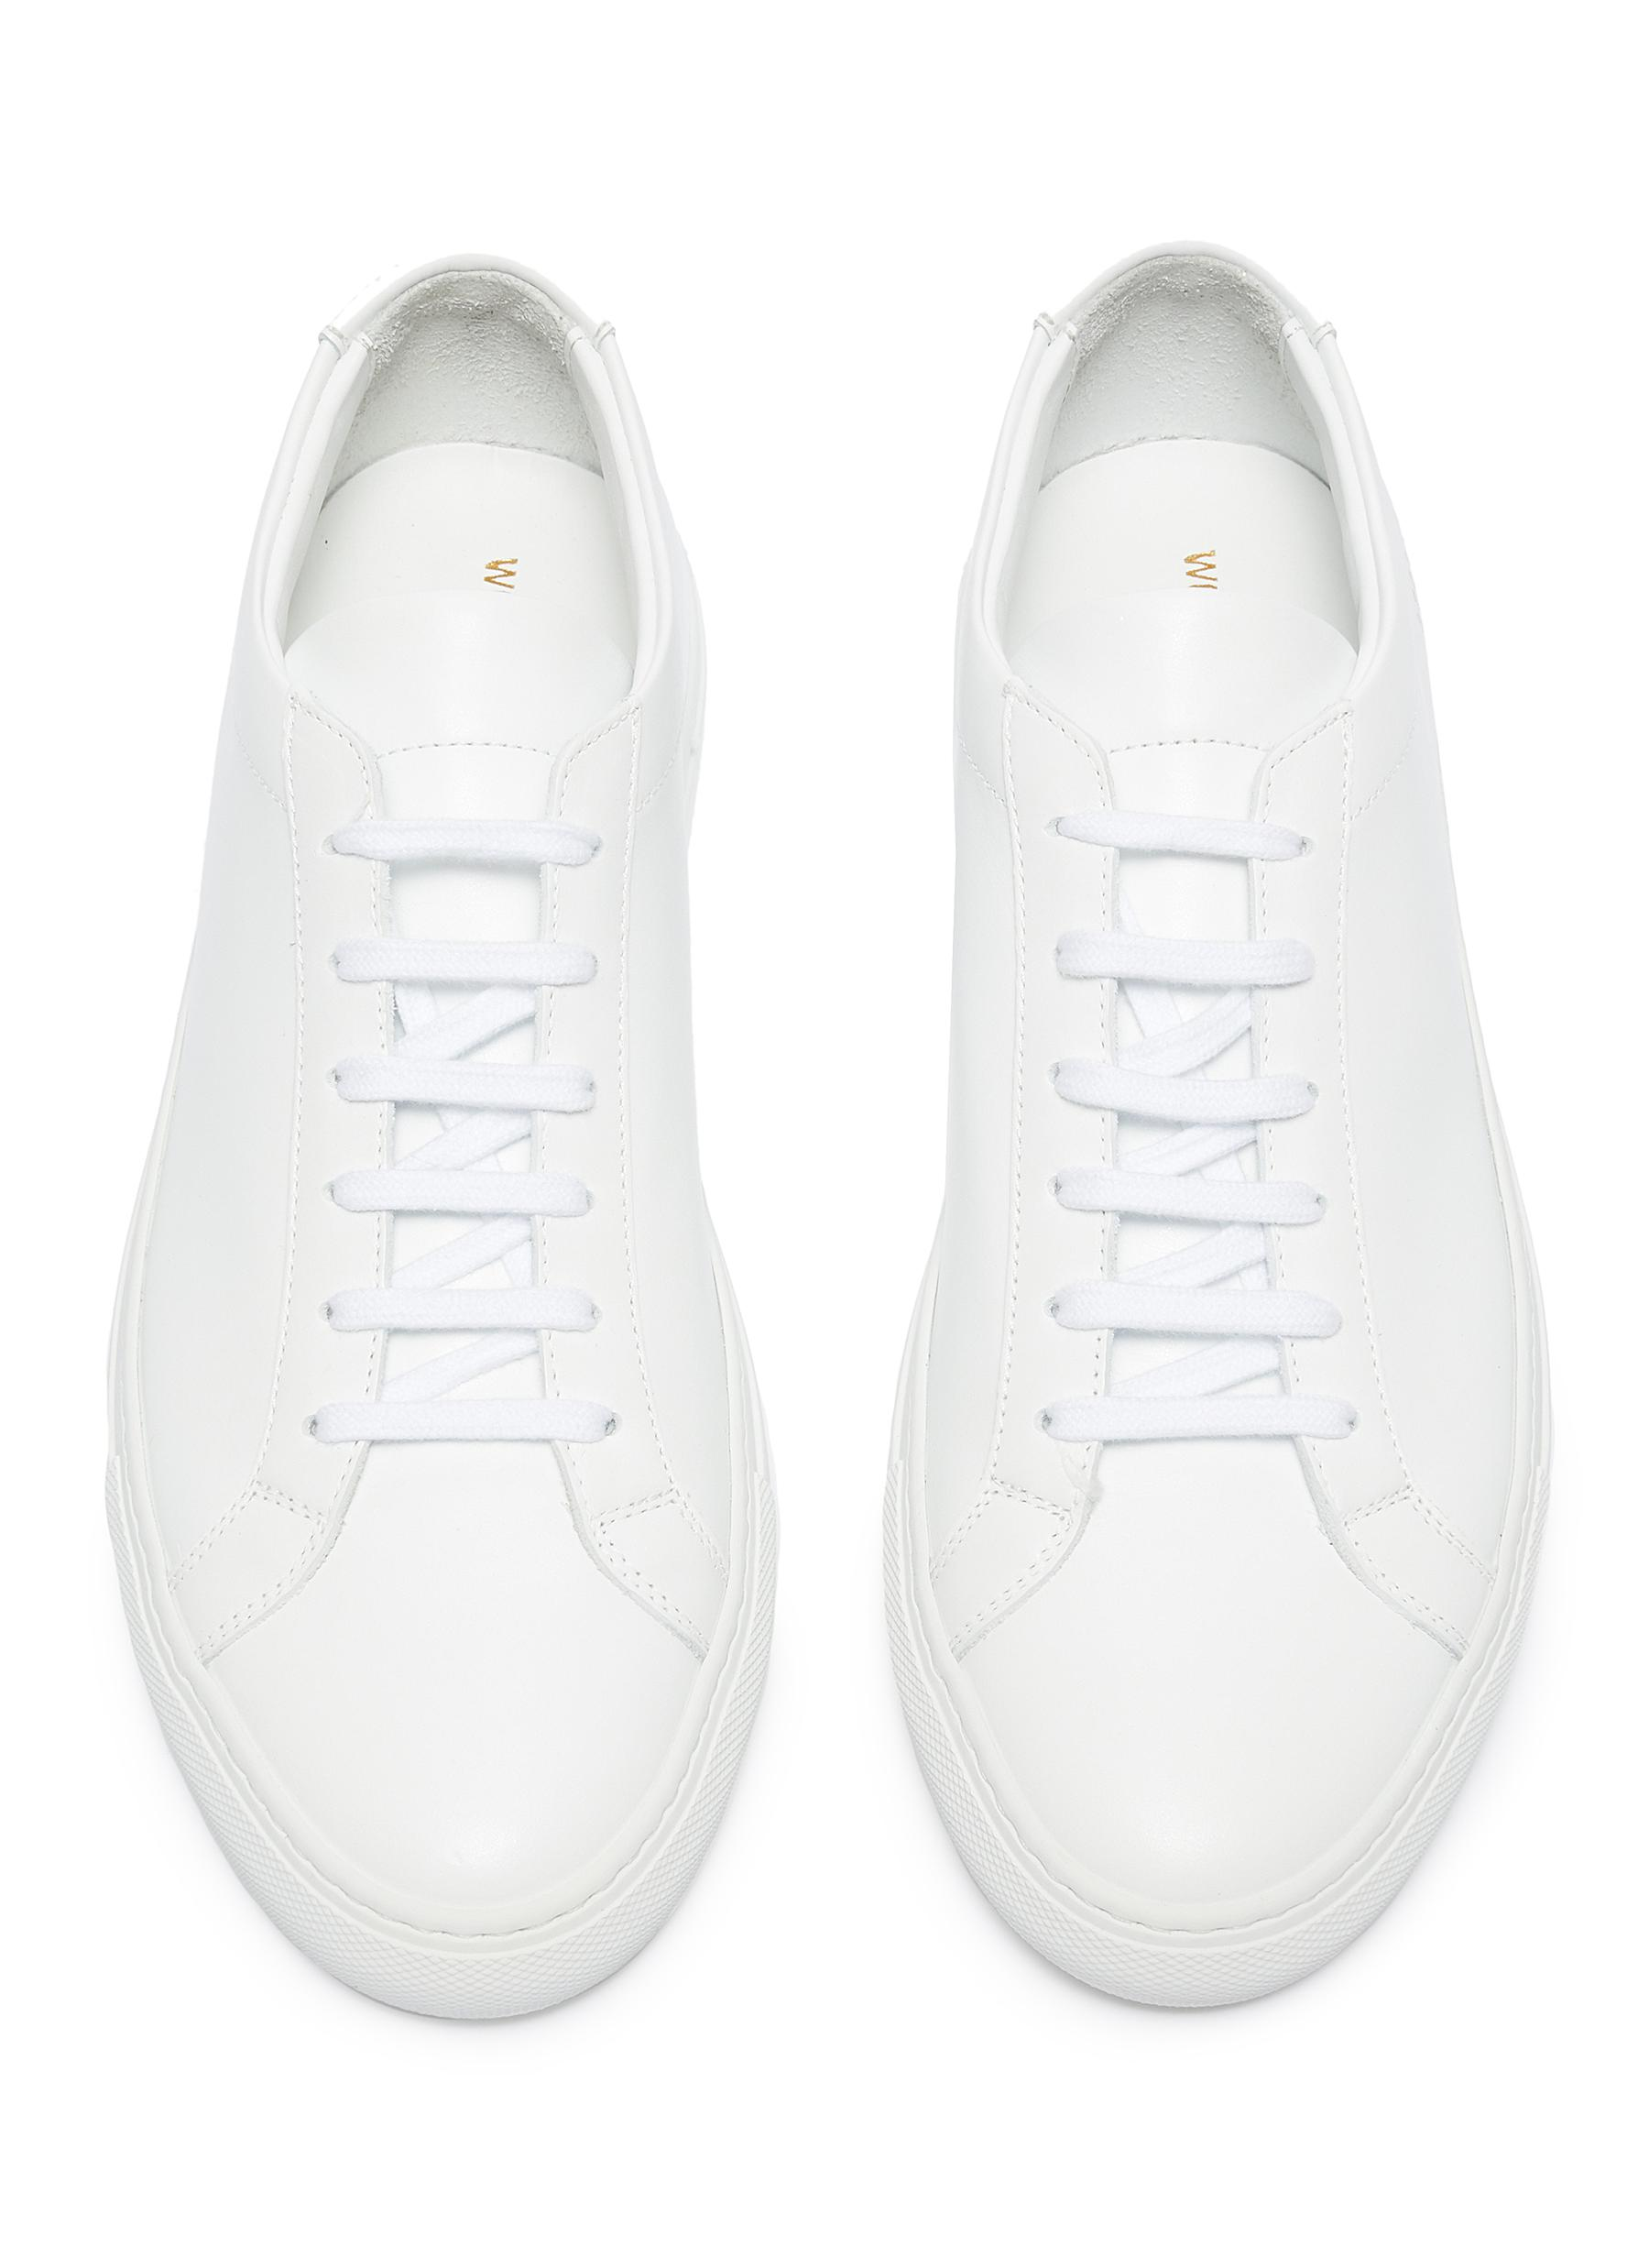 Common Projects Original Achilles Sneakers - Off White Size 11